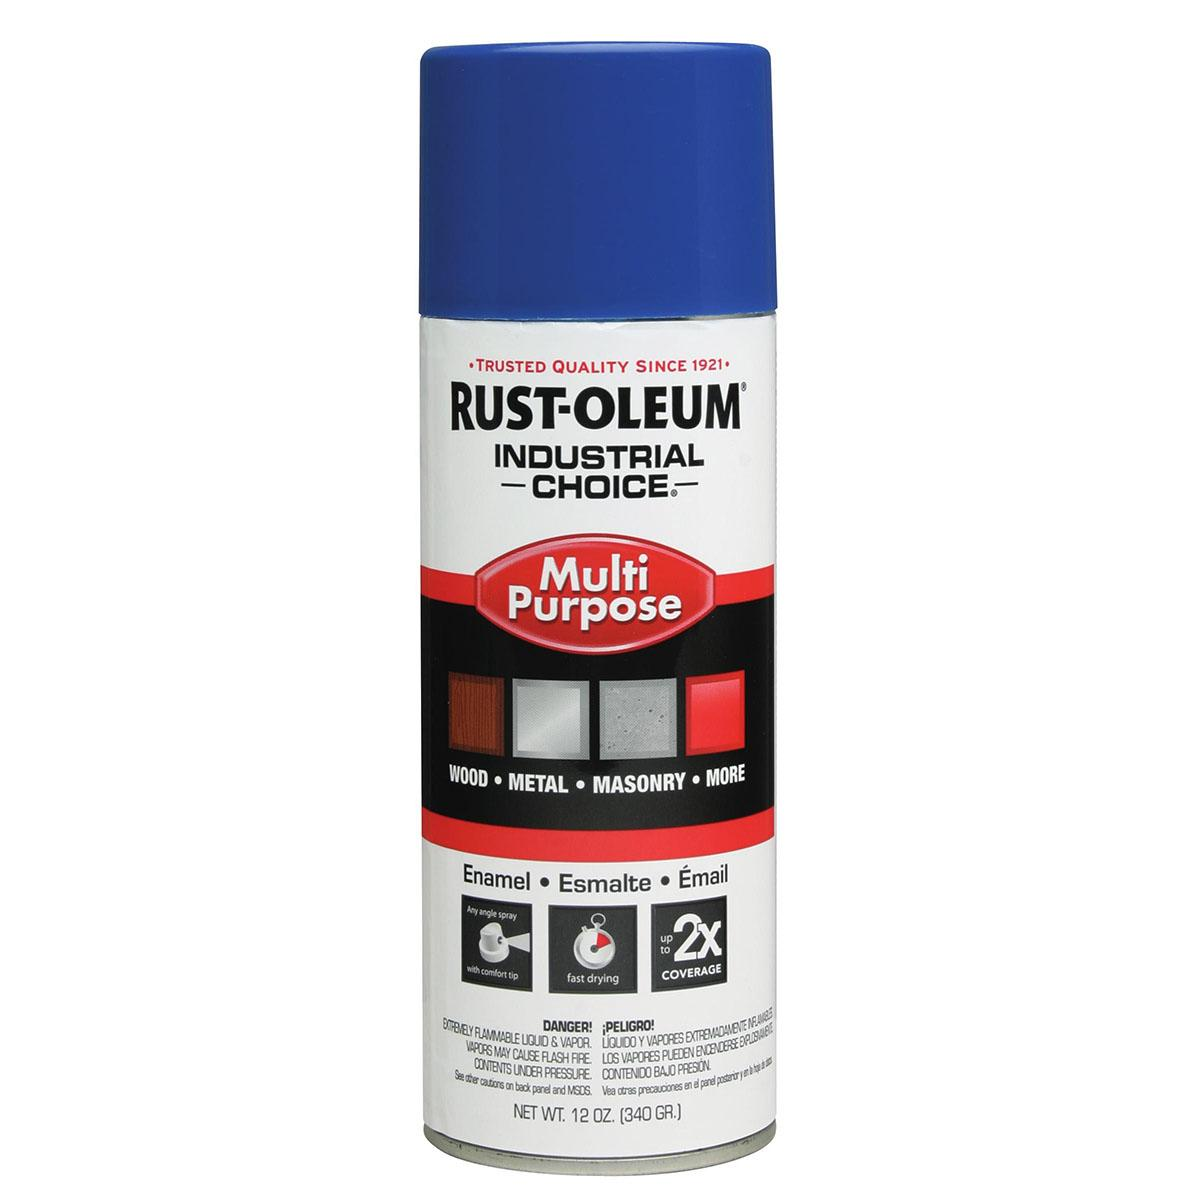 Rust-Oleum® Industrial Choice® 1624830 12 oz Aerosol Can Solvent Based Multi-Purpose Alkyd Enamel Spray Paint, Gloss Safety Blue